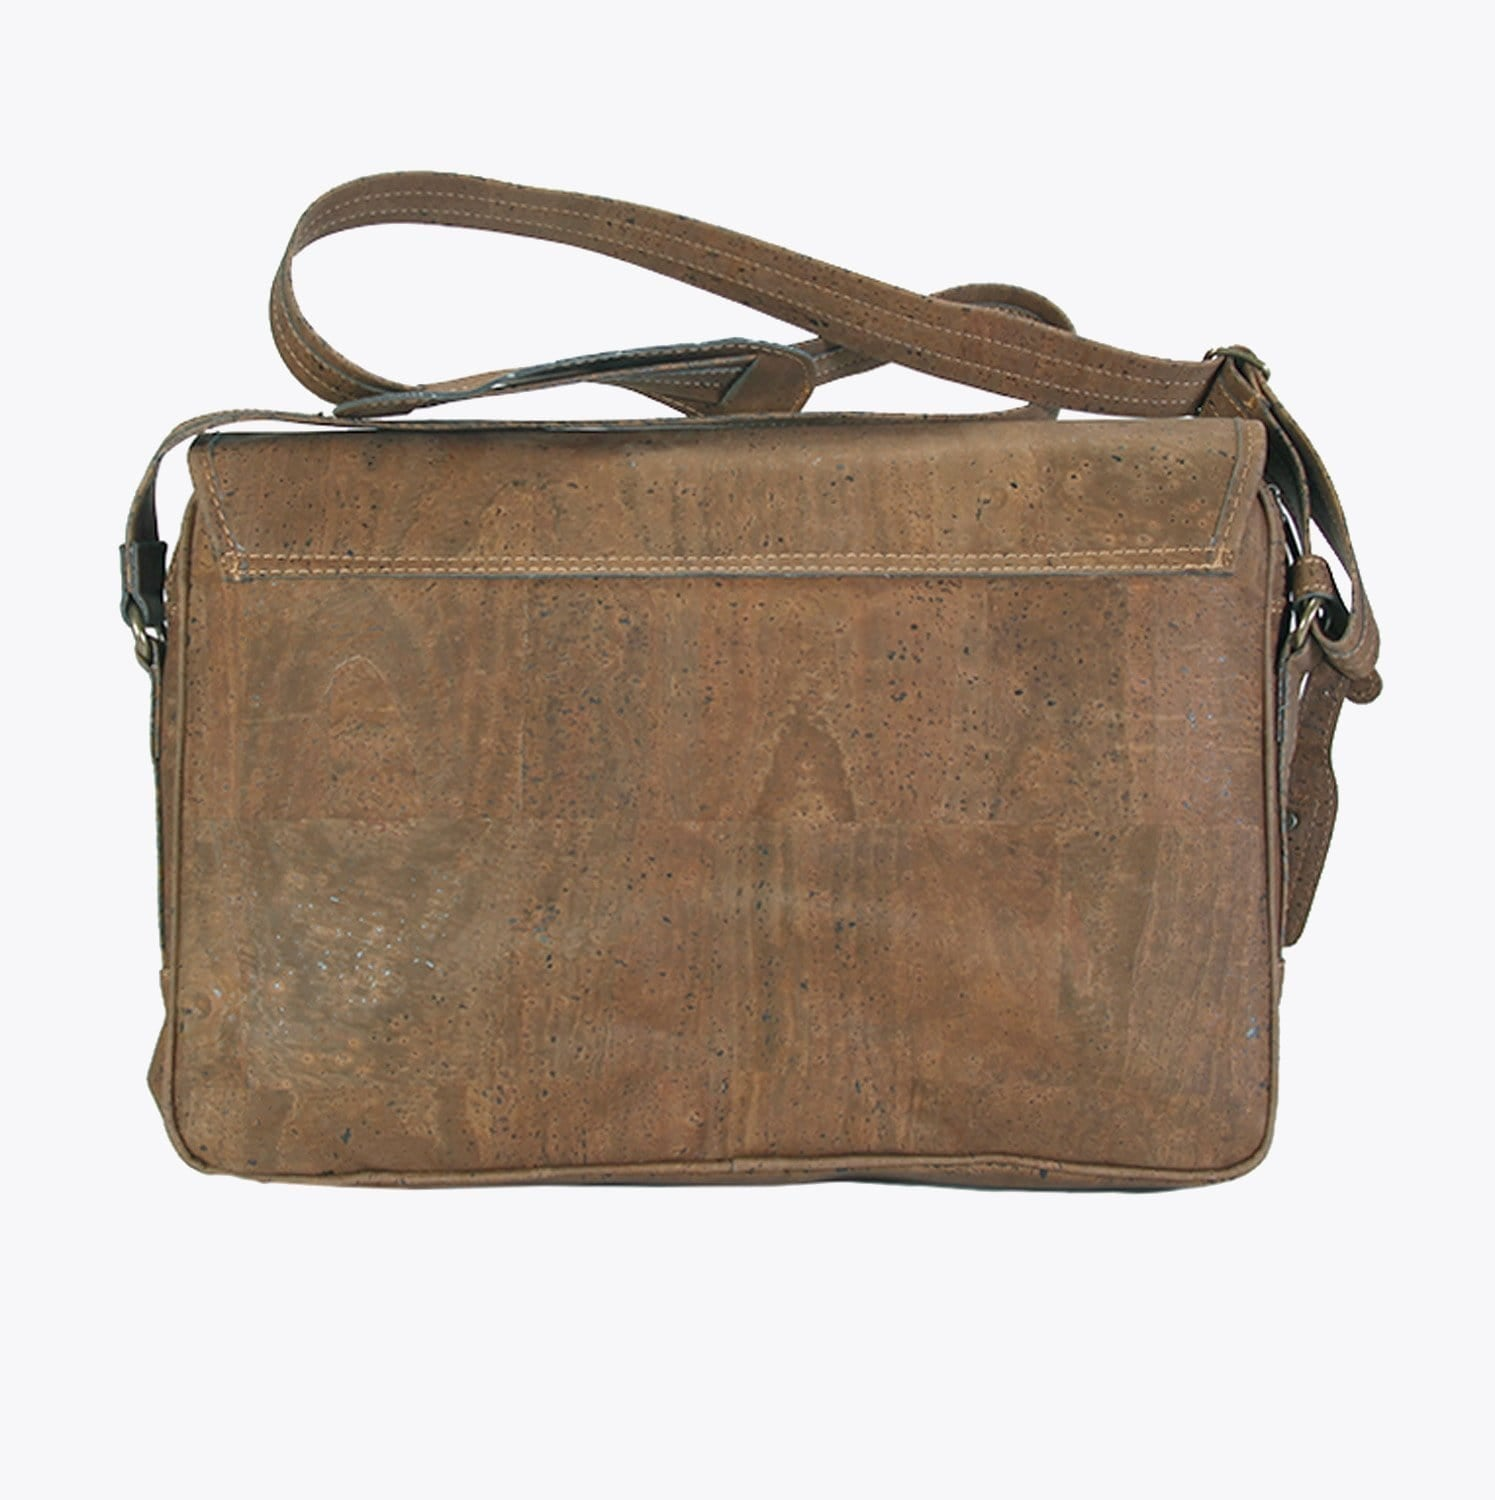 Laptop Bag Crossbody Briefcase - Chocolate Brown - Naturally Anti-Microbial Hypoallergenic Sustainable Eco-Friendly Cork